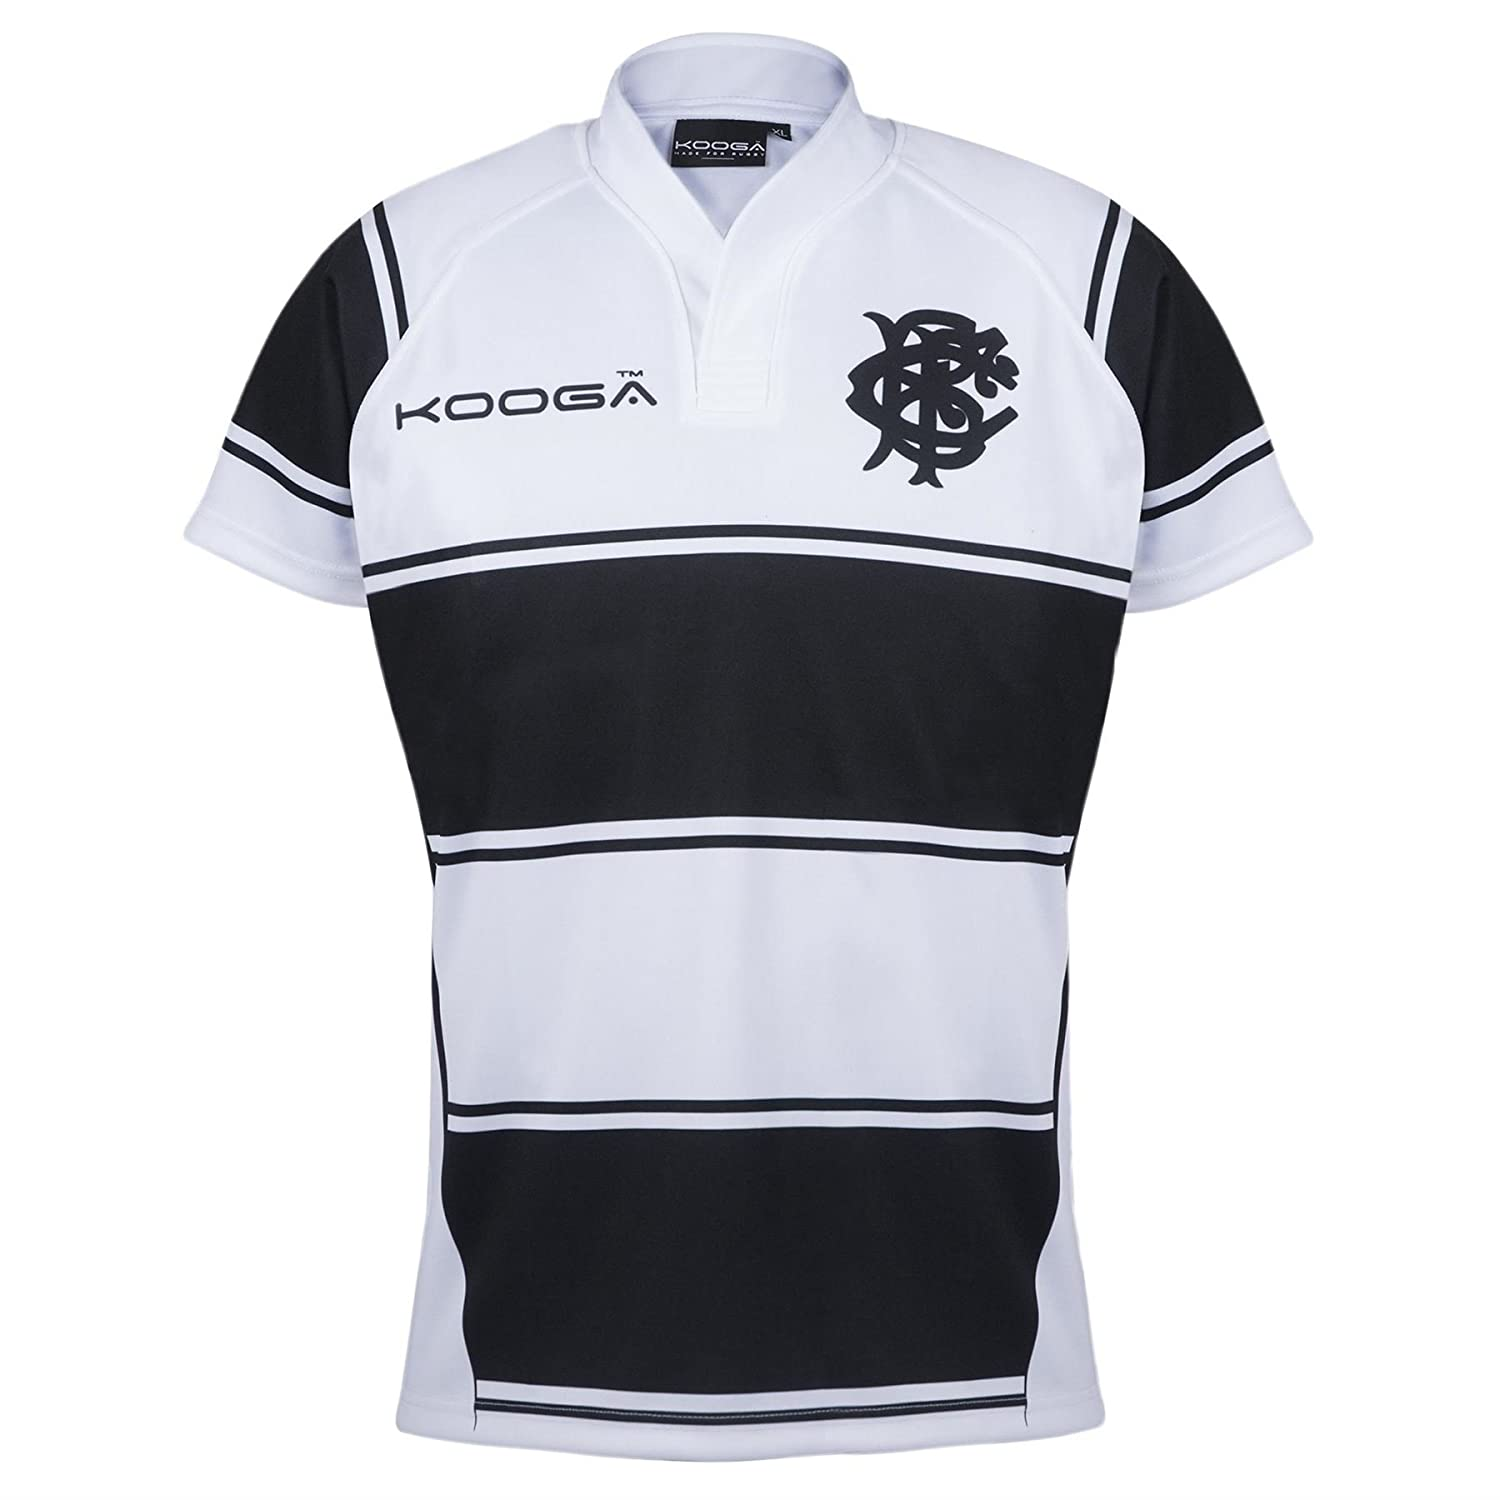 f3fa5af912b Kooga Mens Gents Rugby Barbarians Home Shirt Jersey Top 2016-17 -  White Black - S  Amazon.co.uk  Clothing